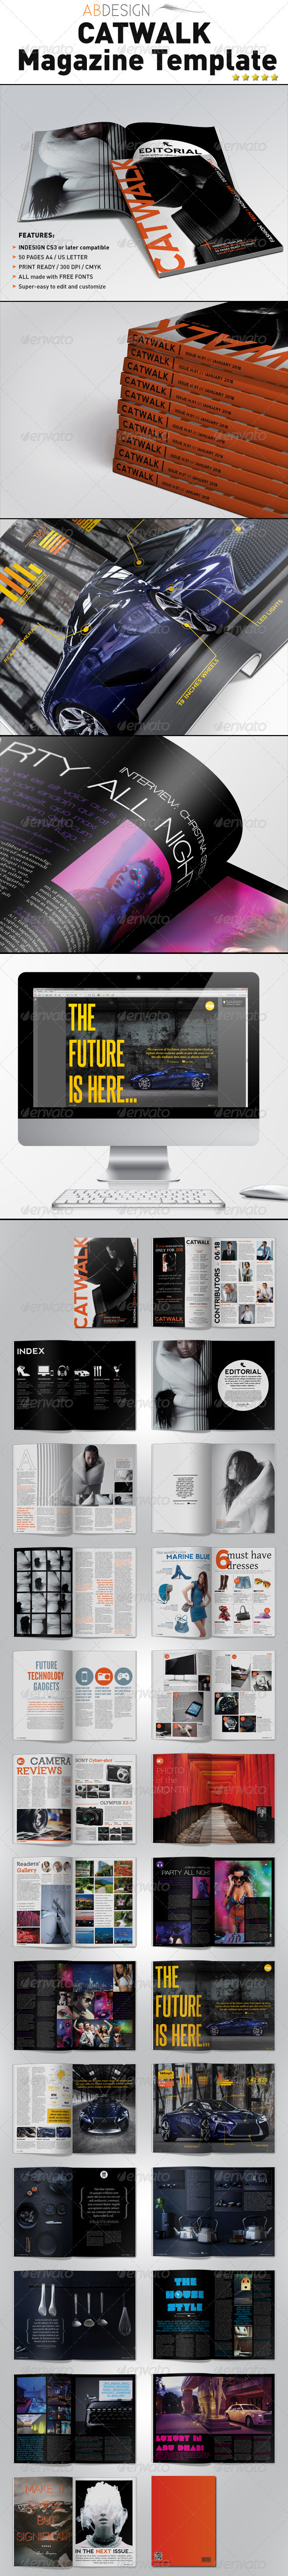 Catwalk Magazine Indesign Template - Magazines Print Templates